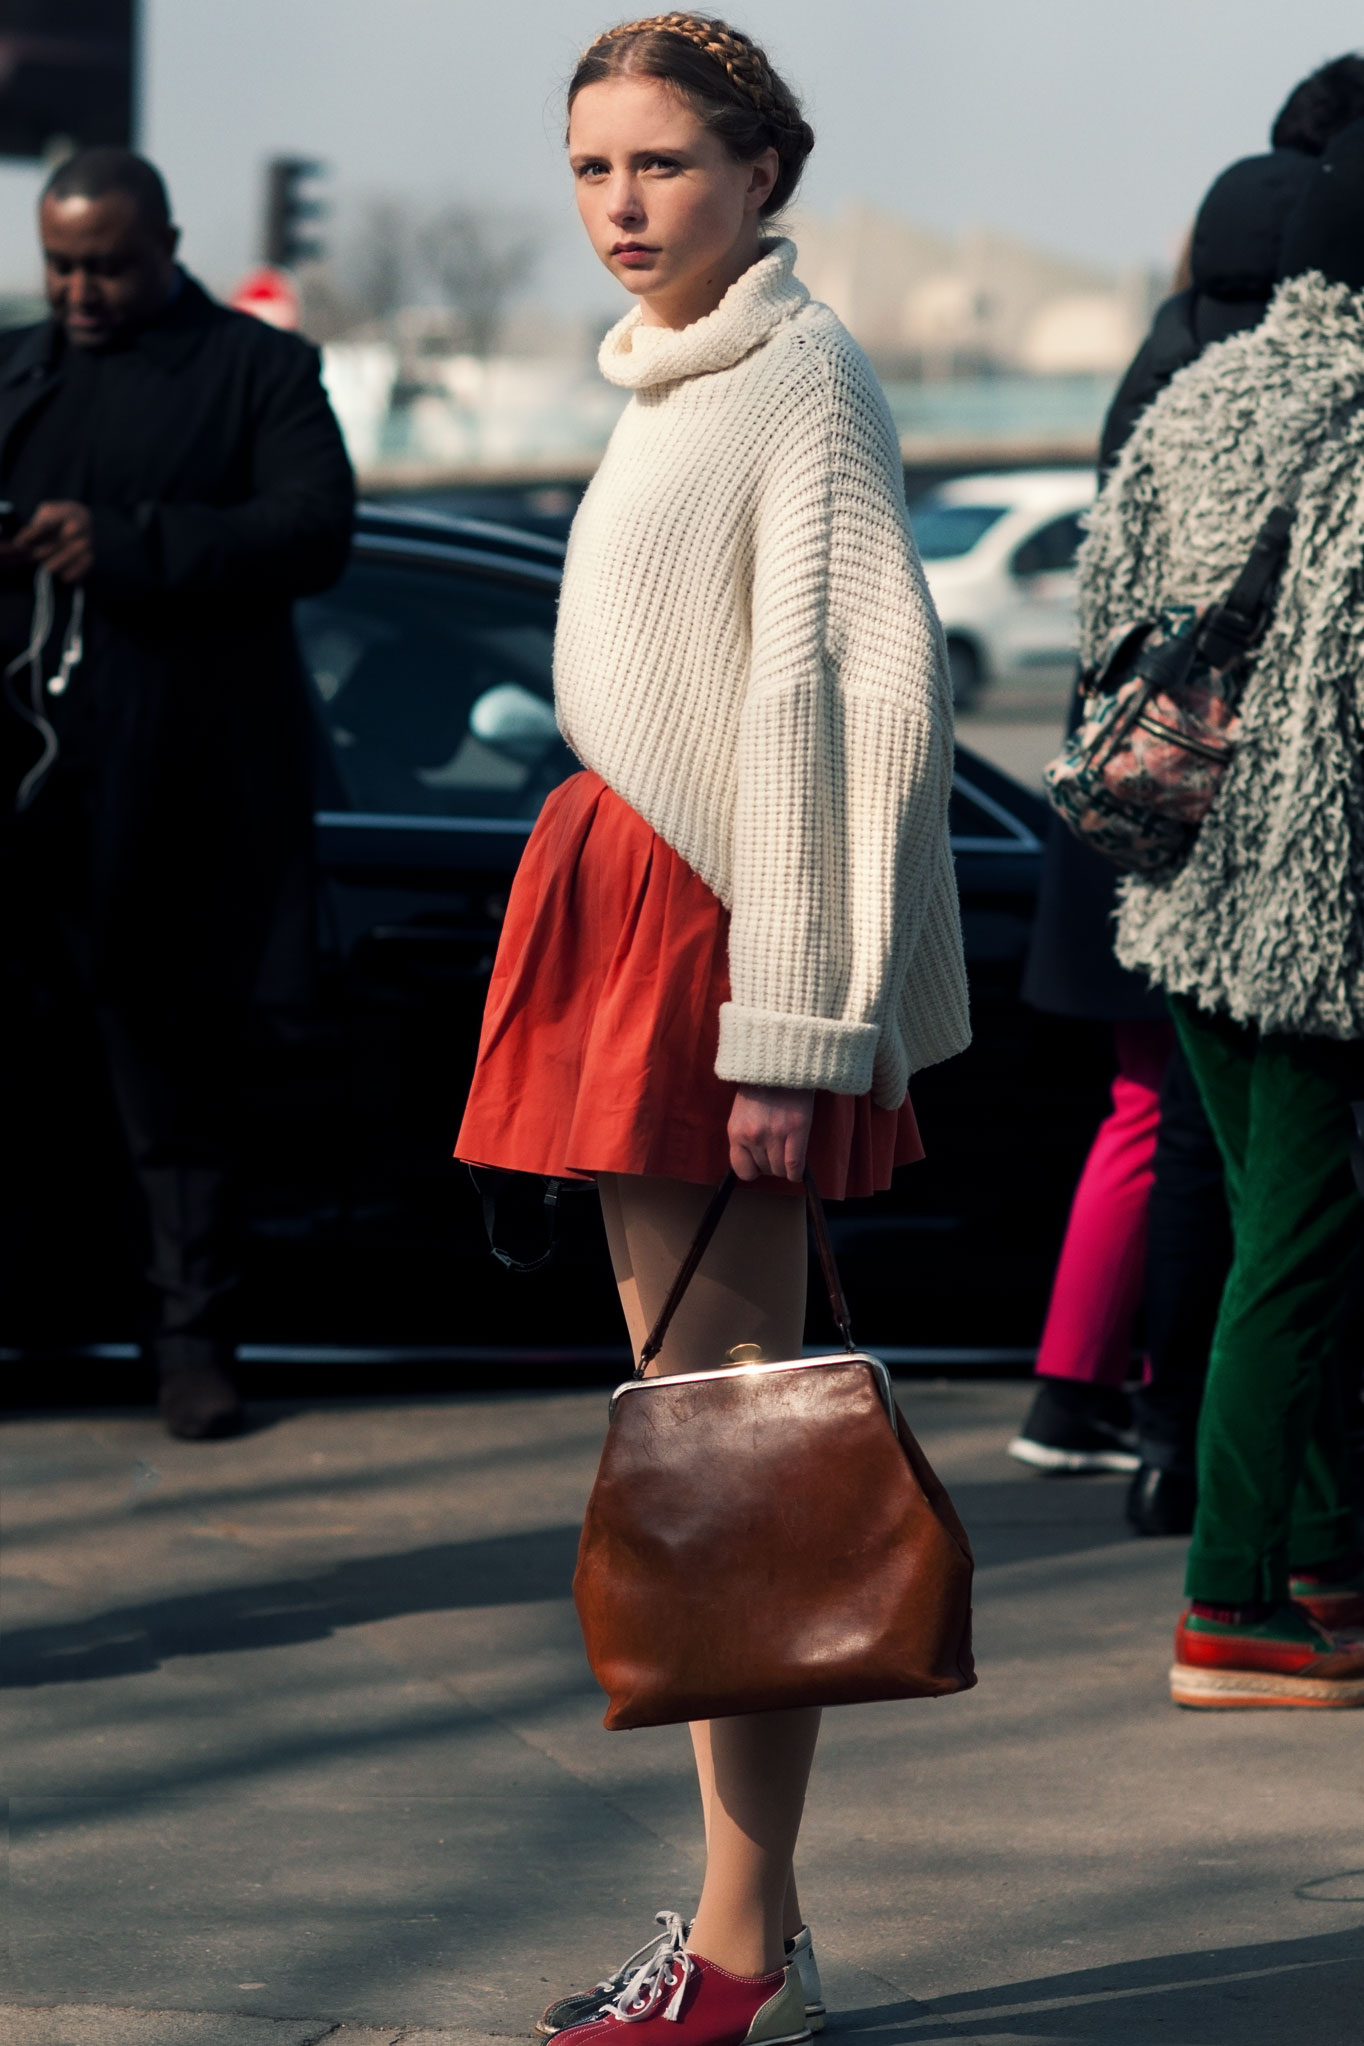 Marie Myrhøj Jensen at Paris Fashion Week Fall/Winter 2013